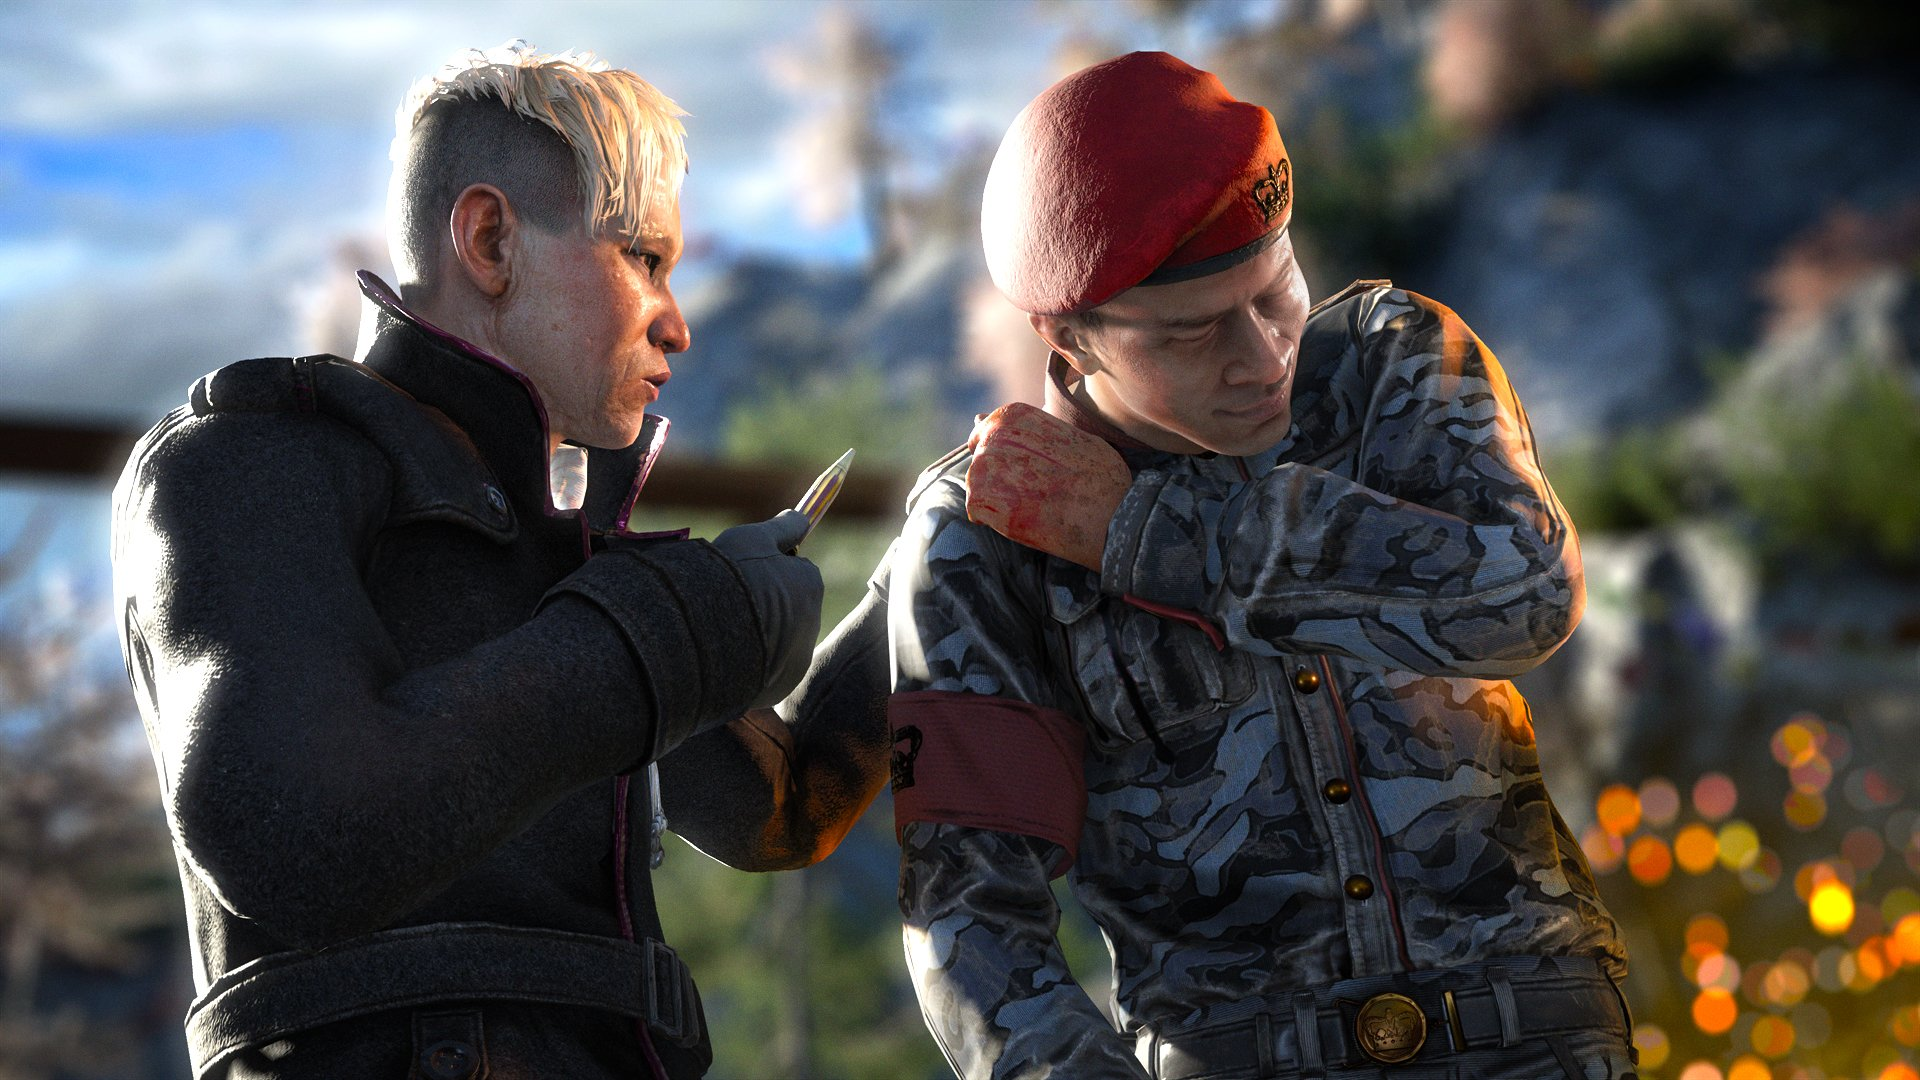 Far Cry 4 Has Black Humor Gets More Details About Pagan Min Ajay